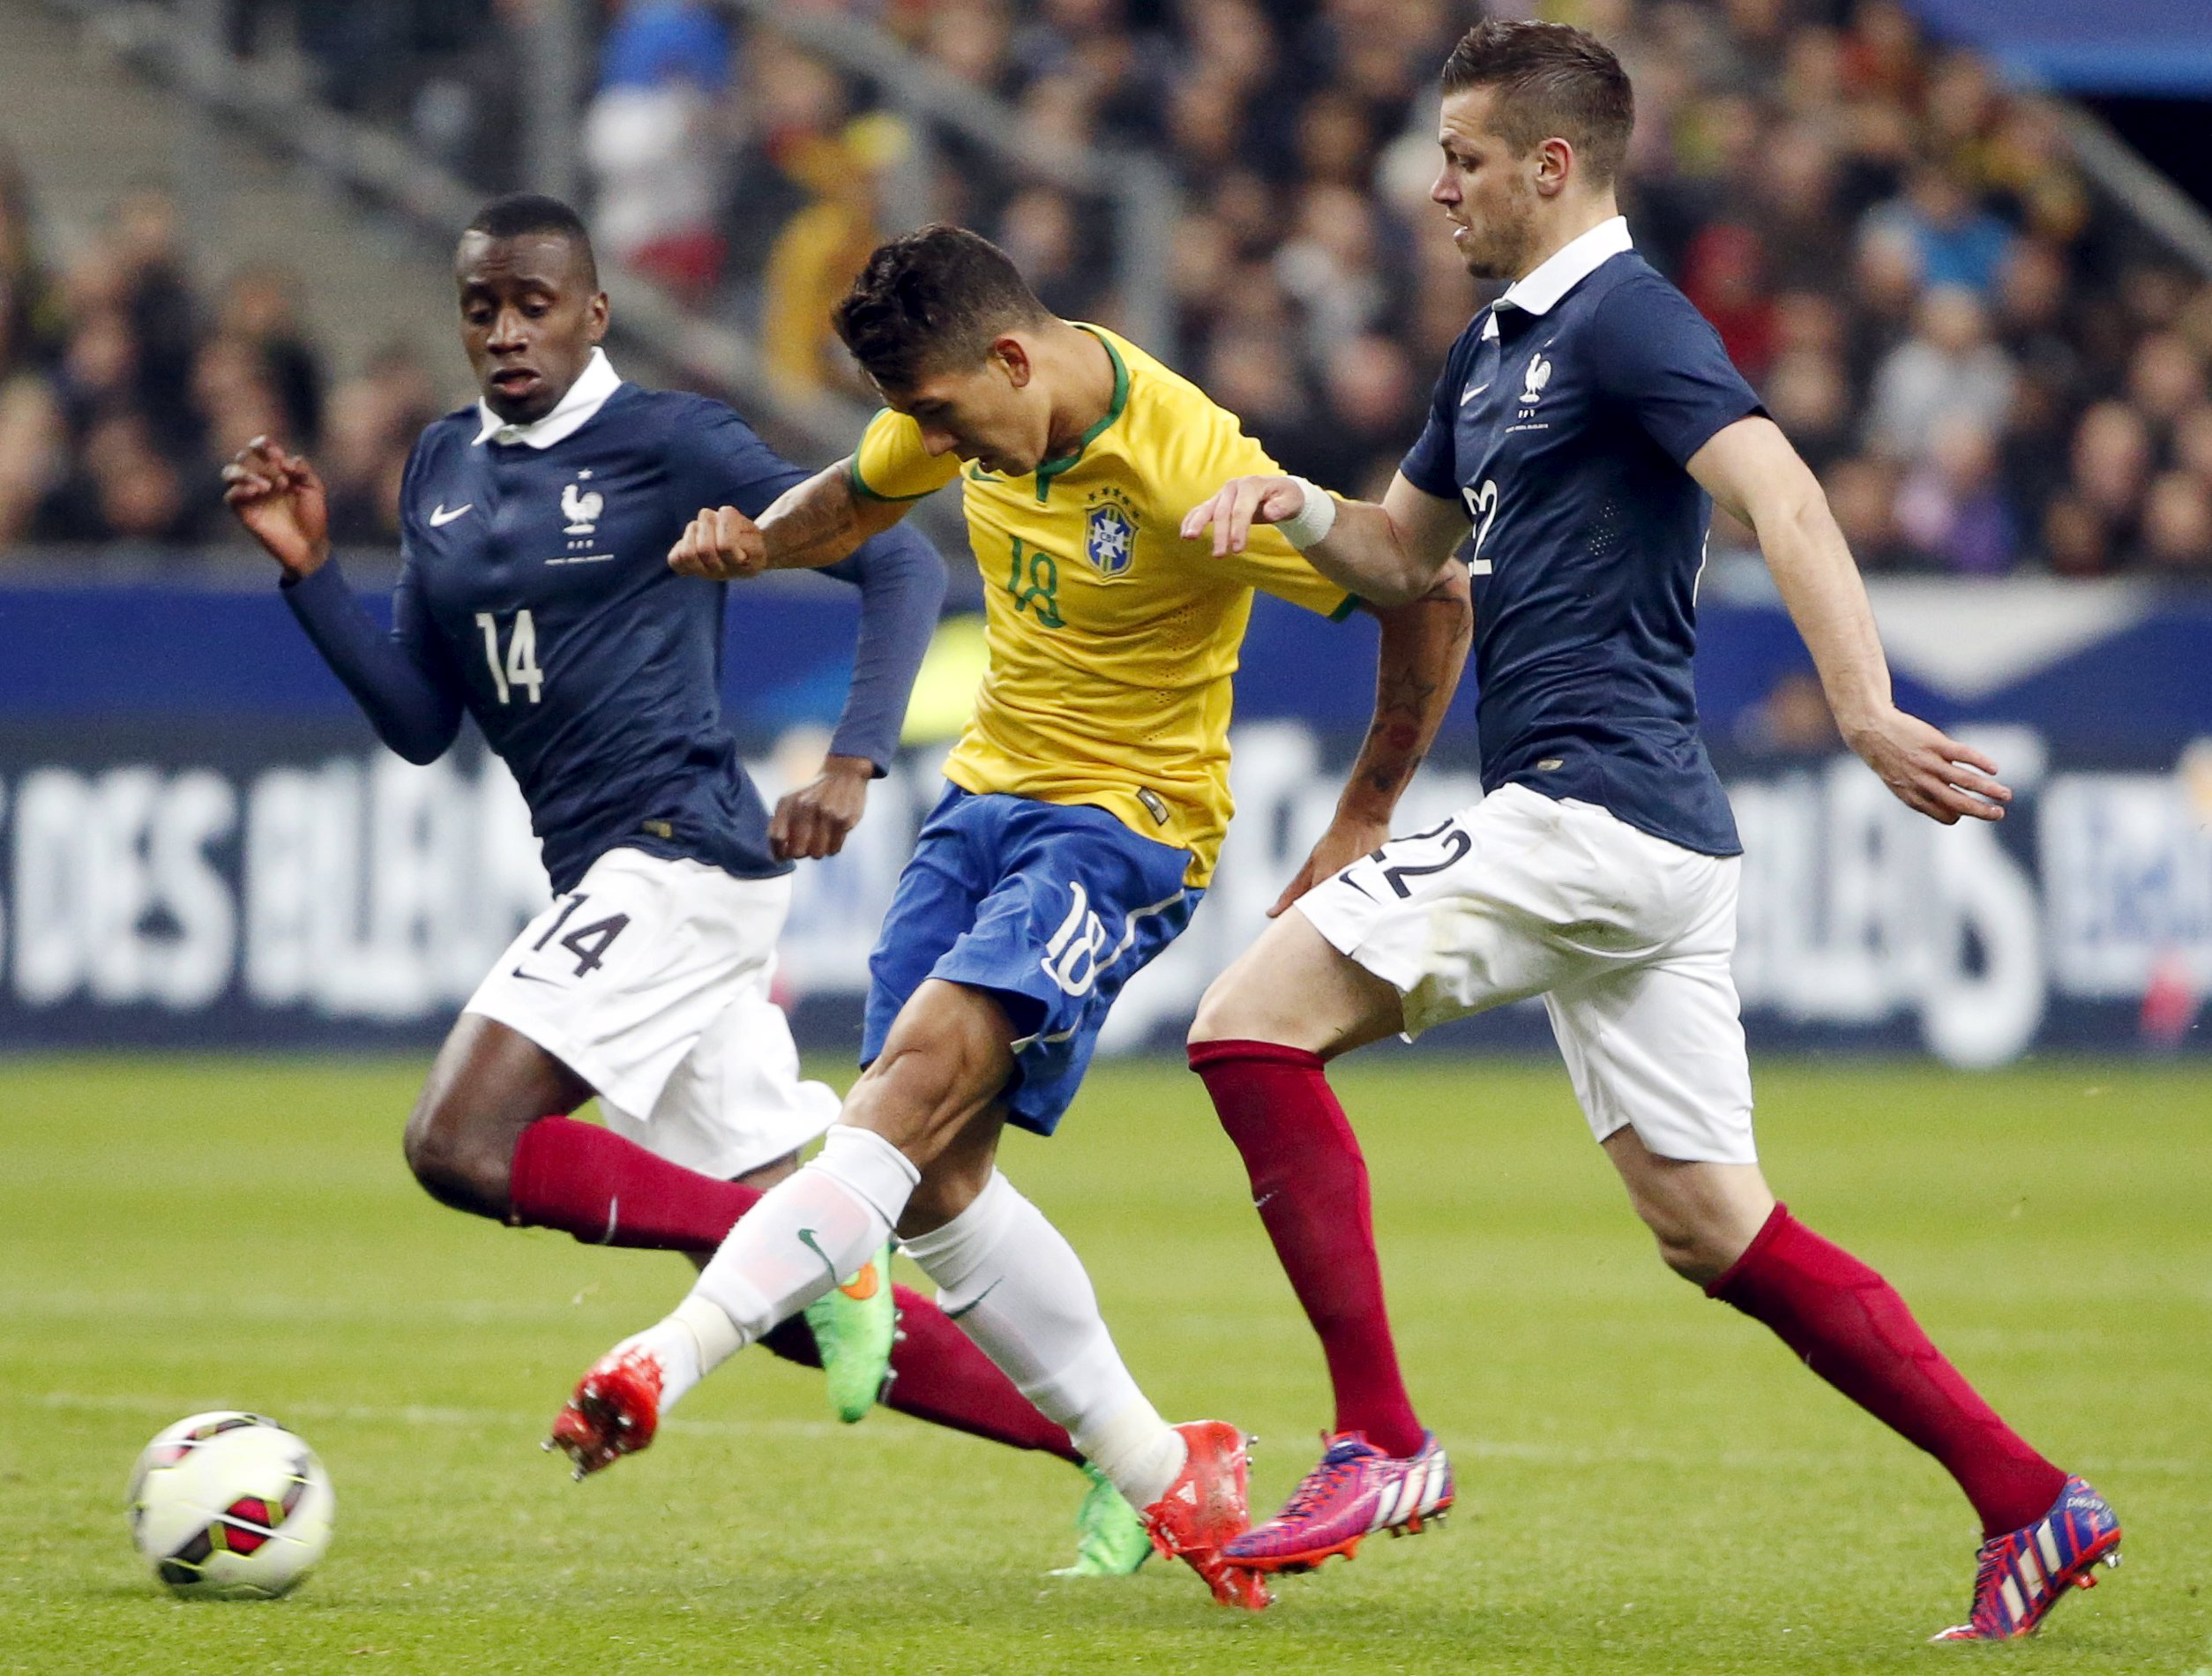 Brazil finding right balance in France win, says Dunga